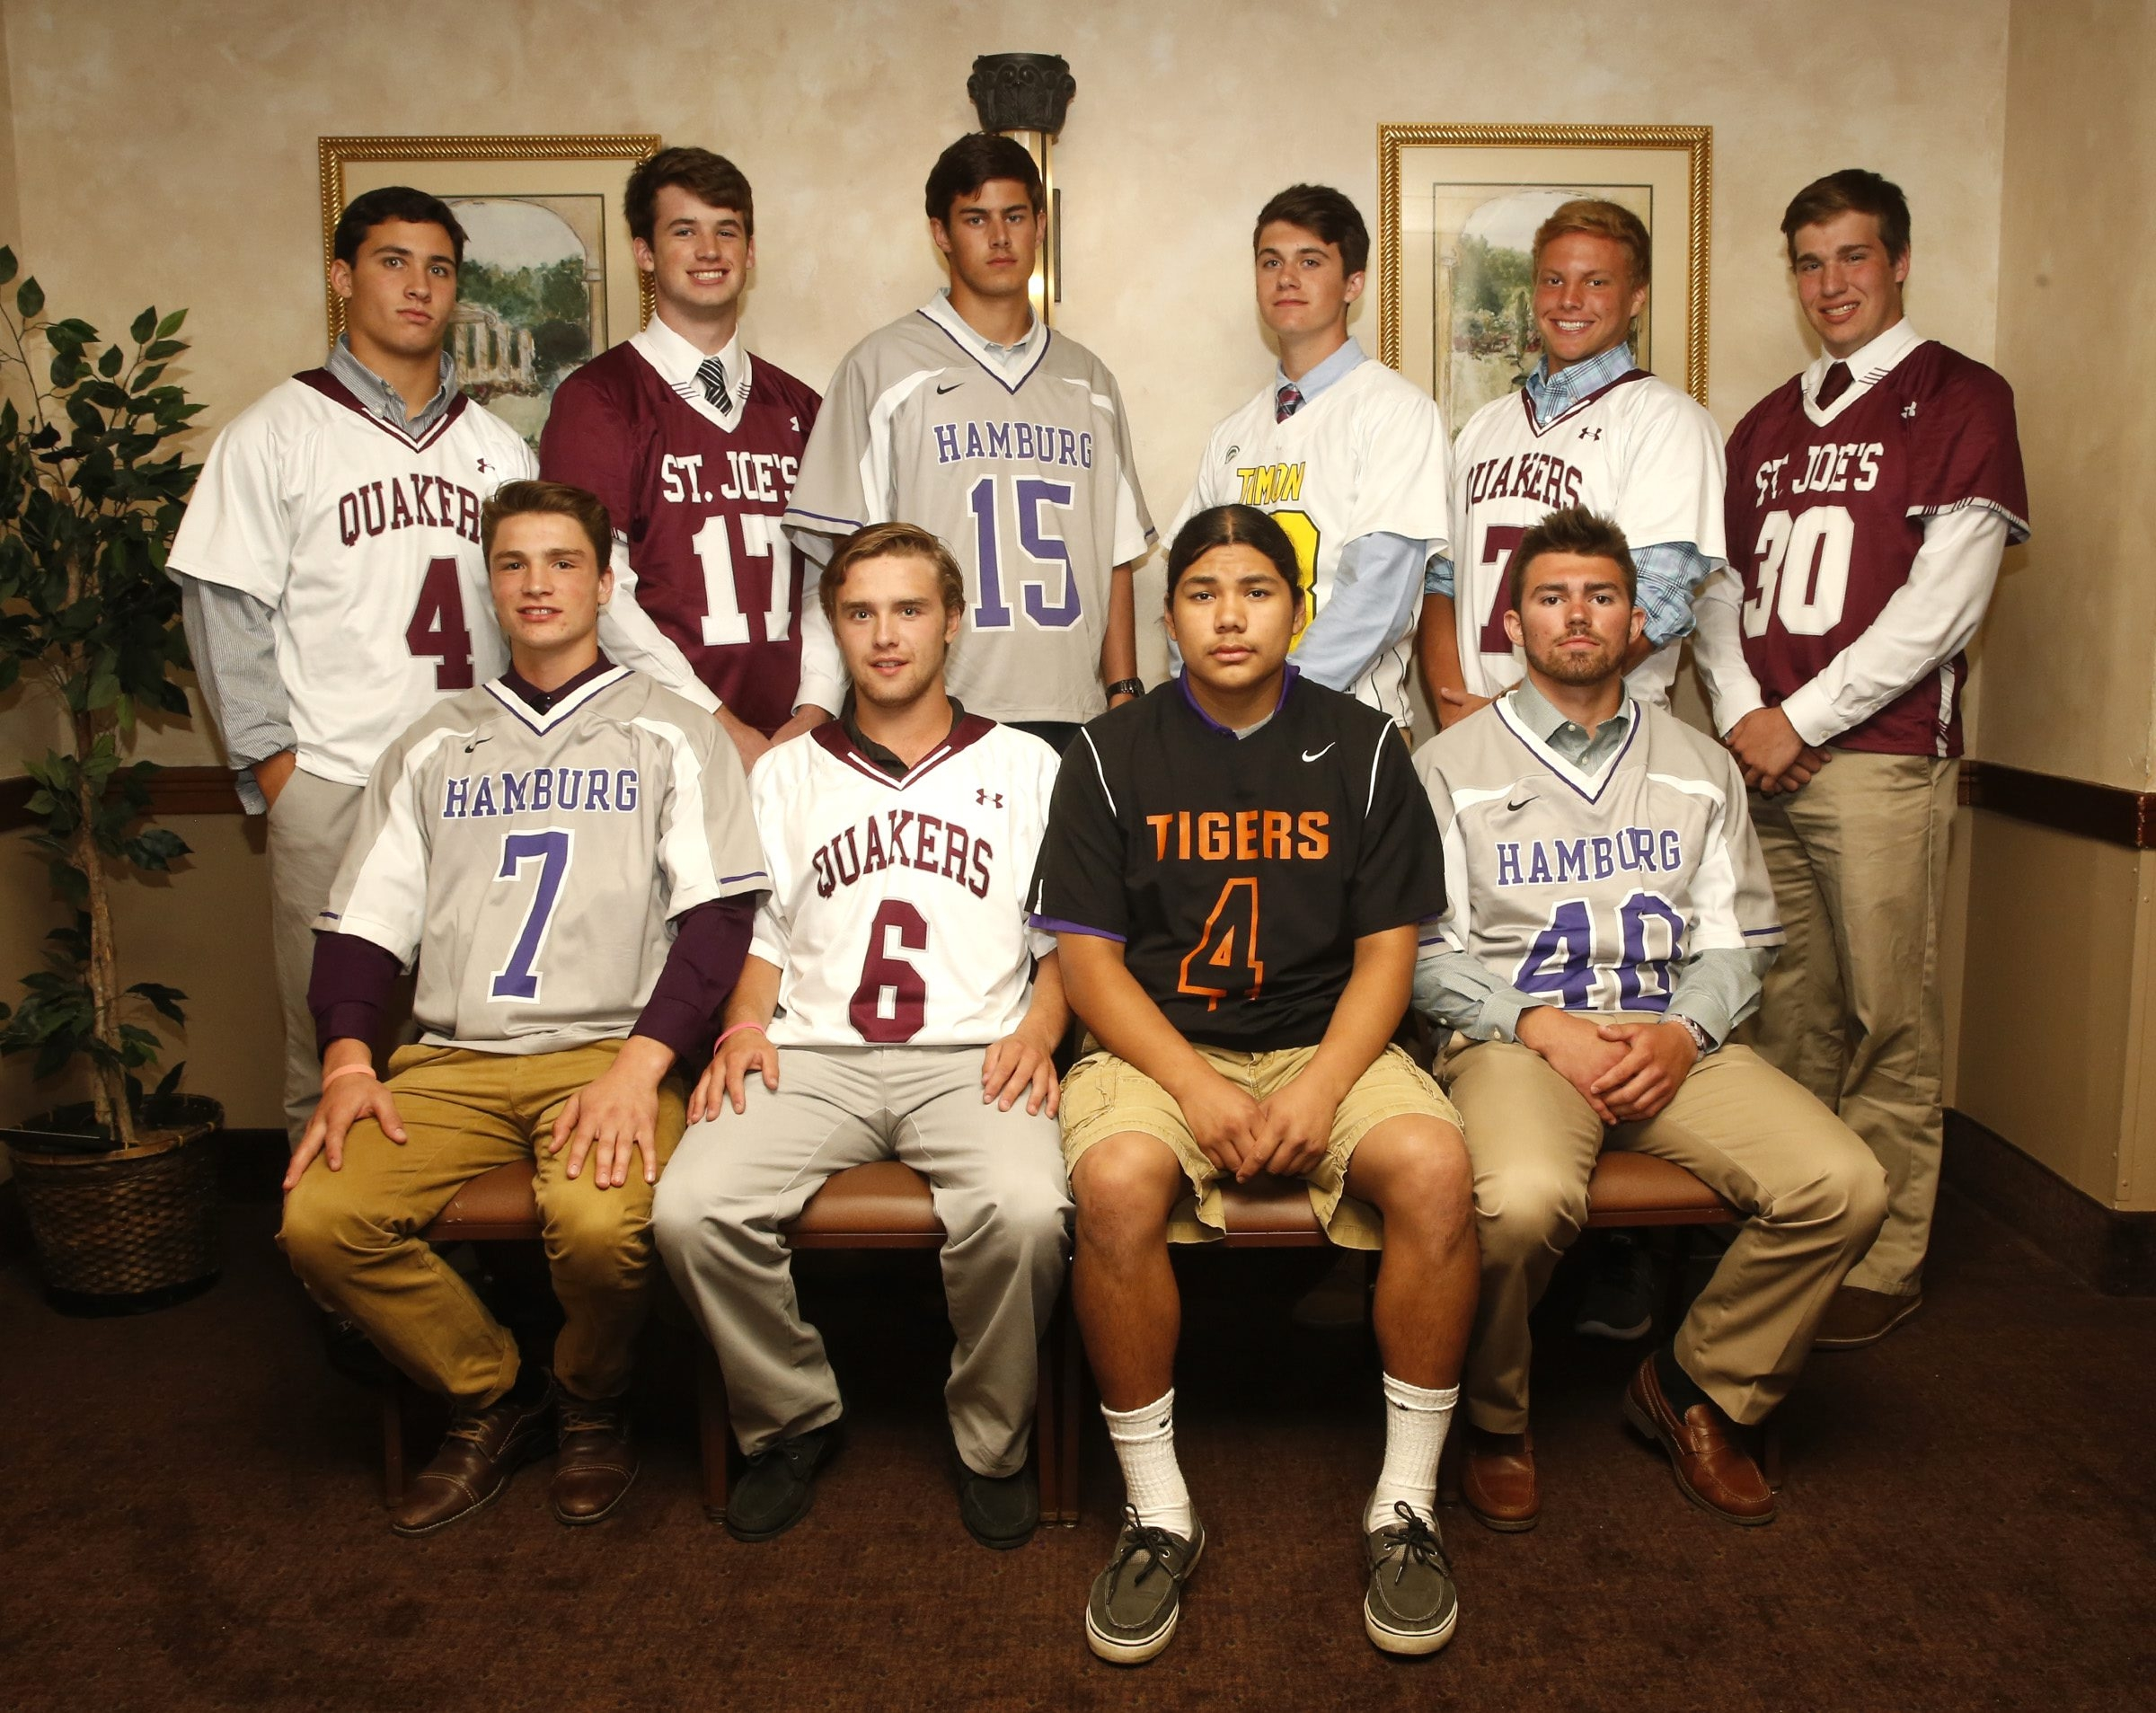 Members of the All-Western New York boys lacrosse team. In front row, from left: Jason Chiodo, Hamburg; Kevin McParlane, Orchard Park; Owen Hill, Akron; Evan Hollfelder, Hamburg. Back row, from left: Ron Shul, Orchard Park; Jack Lalley, St. Joe's; Will Agate, Hamburg; Tyler Manning, Bishop Timon-St. Jude; Josh Dahl, Orchard Park, and Eric Deakin, St. Joe's.